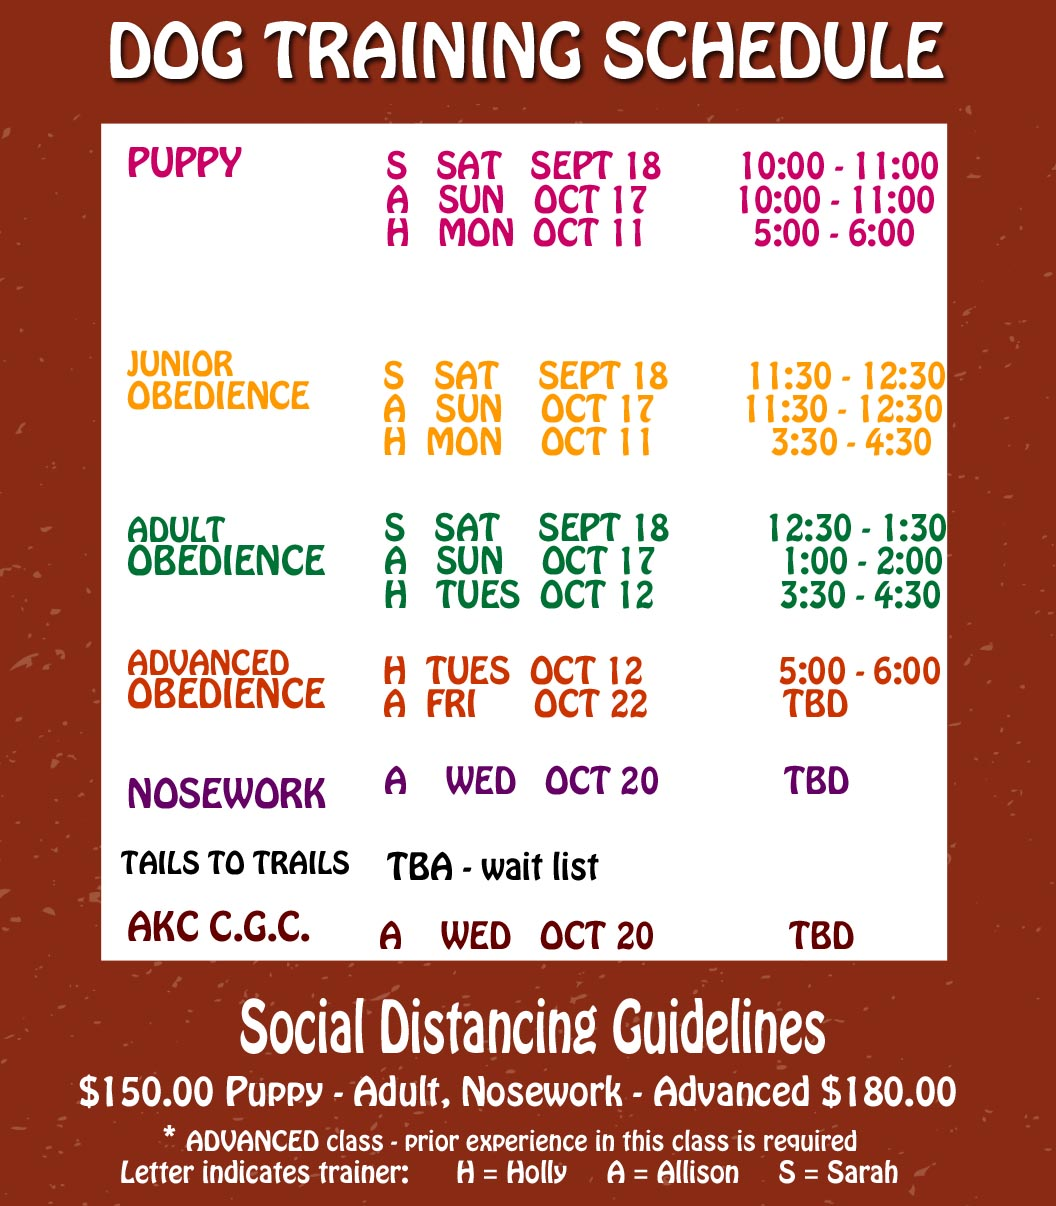 TRAININGSCHED copy